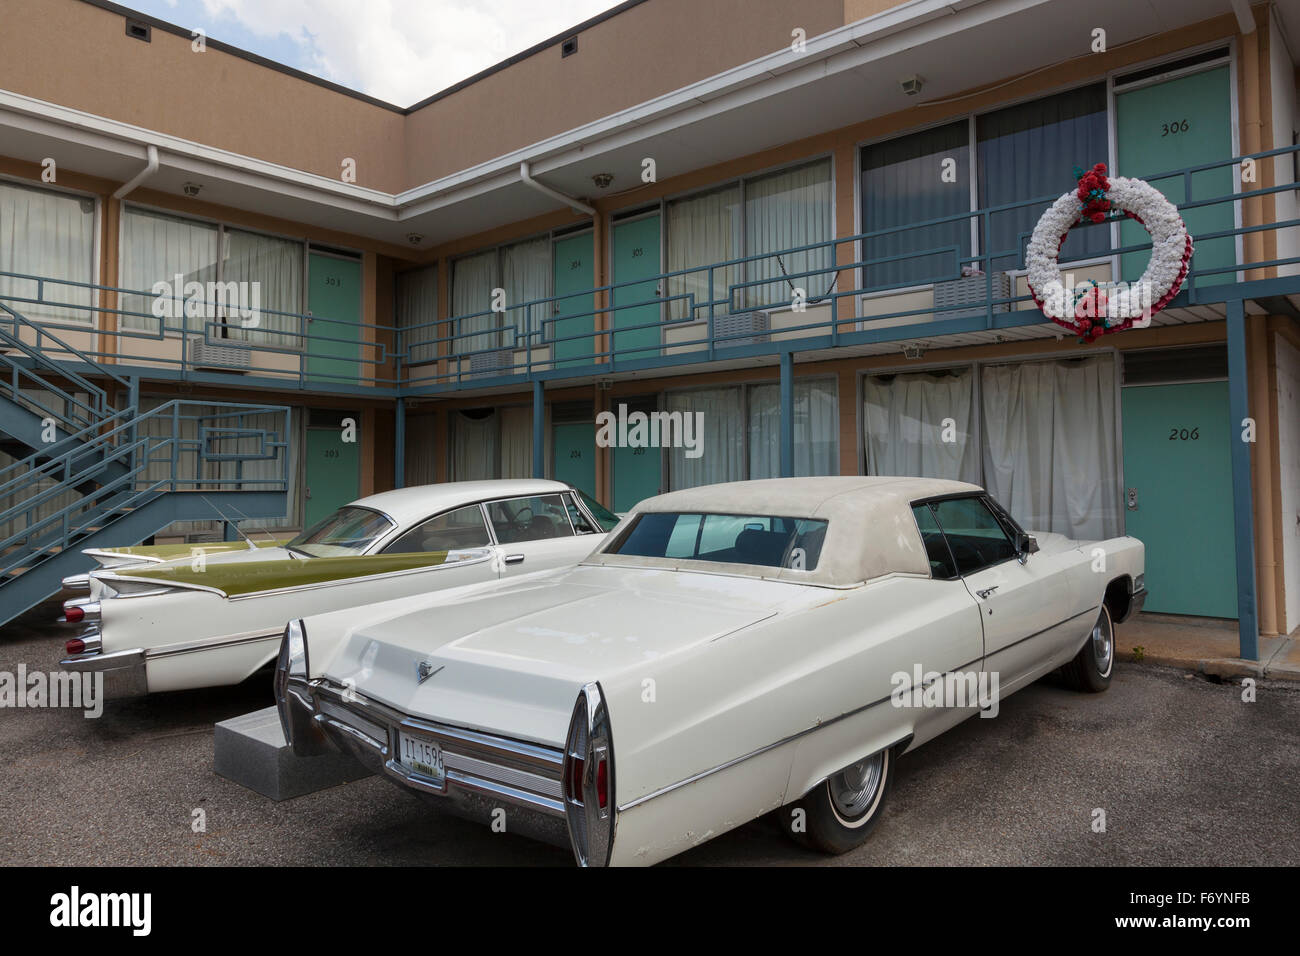 The National Civil Rights Museum at the Lorraine Motel in Memphis, Tennessee, where Martin Luther King Jr. was assassinated Stock Photo